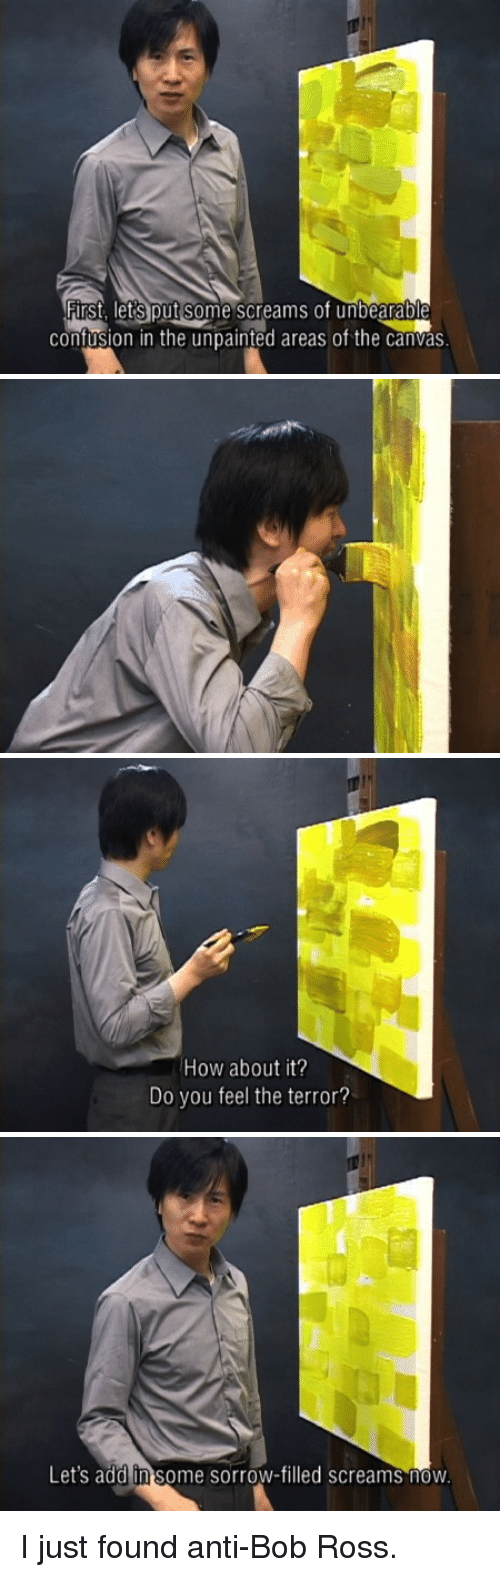 "Panel pics of an Asian ""anti-Bob Ross"" saying existentially terrifying things while he paints"